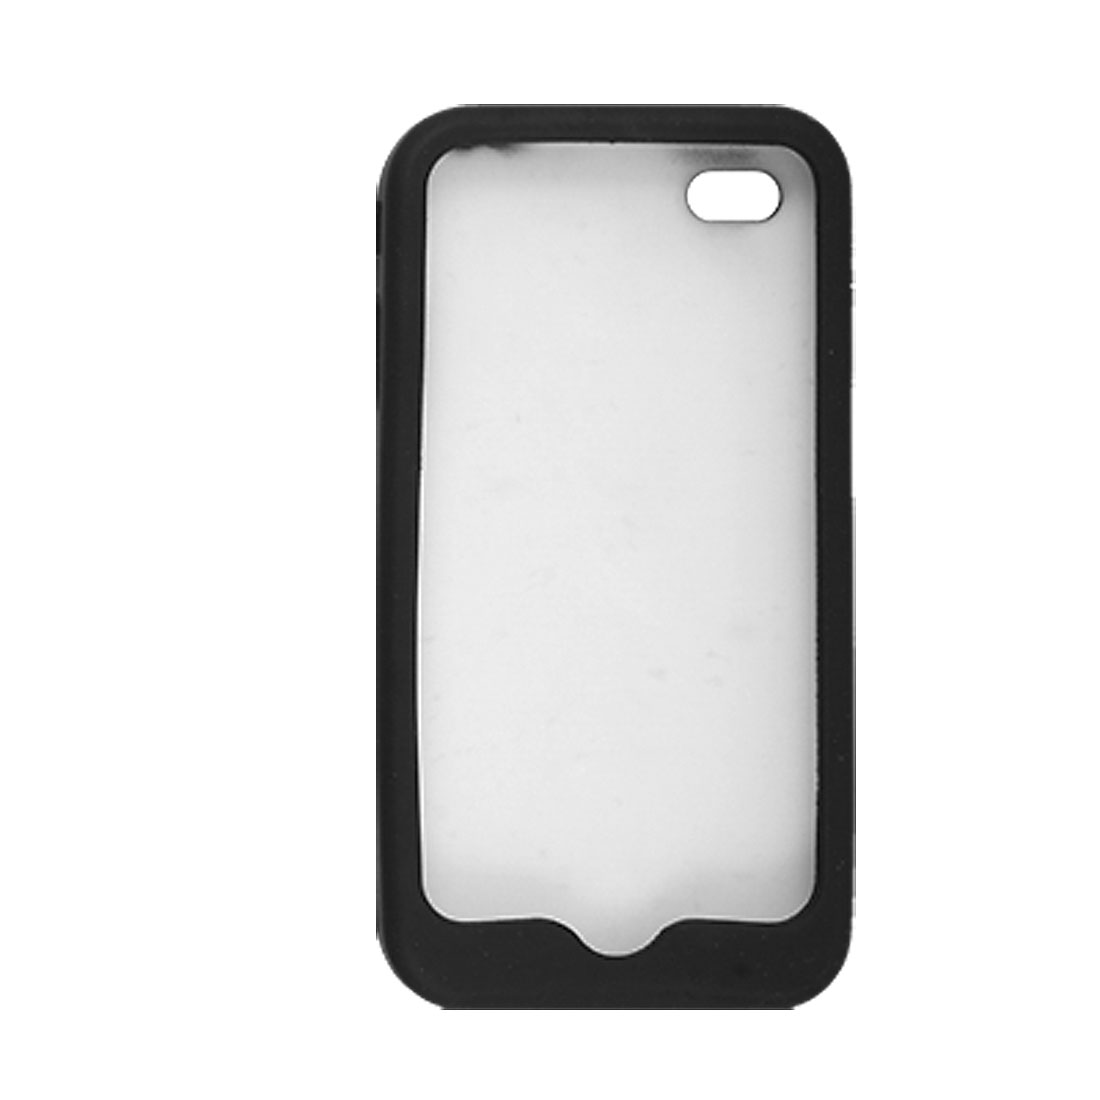 White Petals Patterns Black Silicone Case for iPhone 4 4G